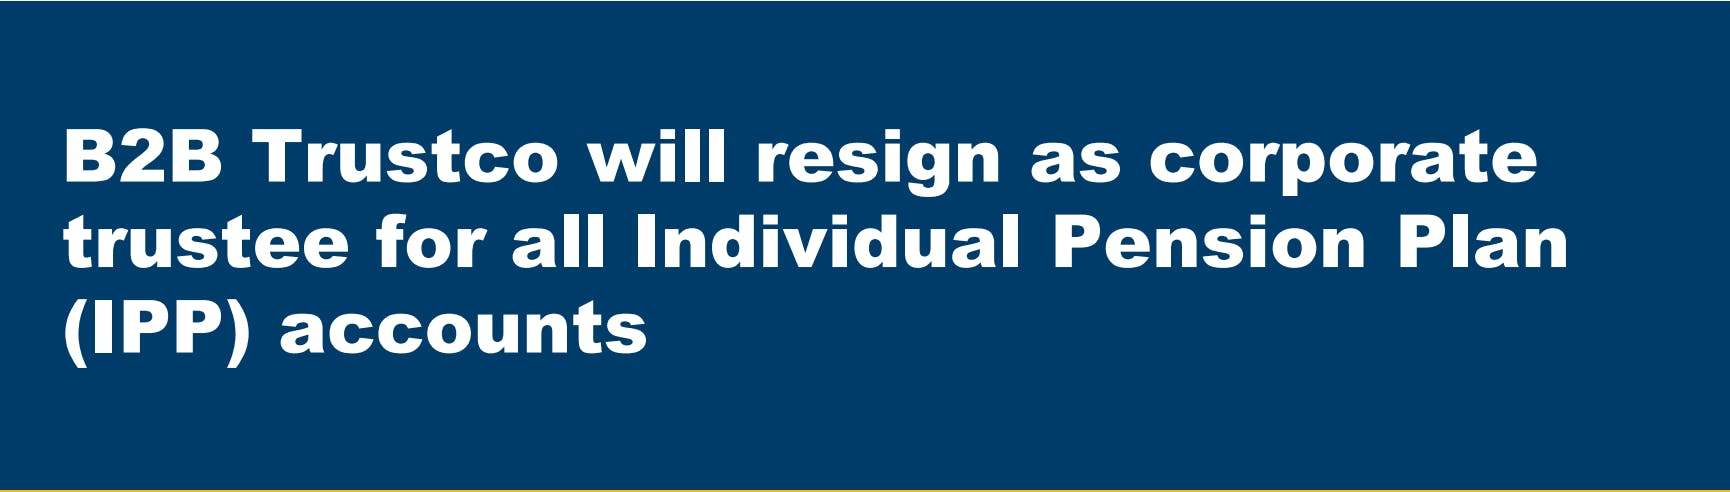 B2B TRUST pulling out of the Individual Pension Plan business!  What advisors should do?